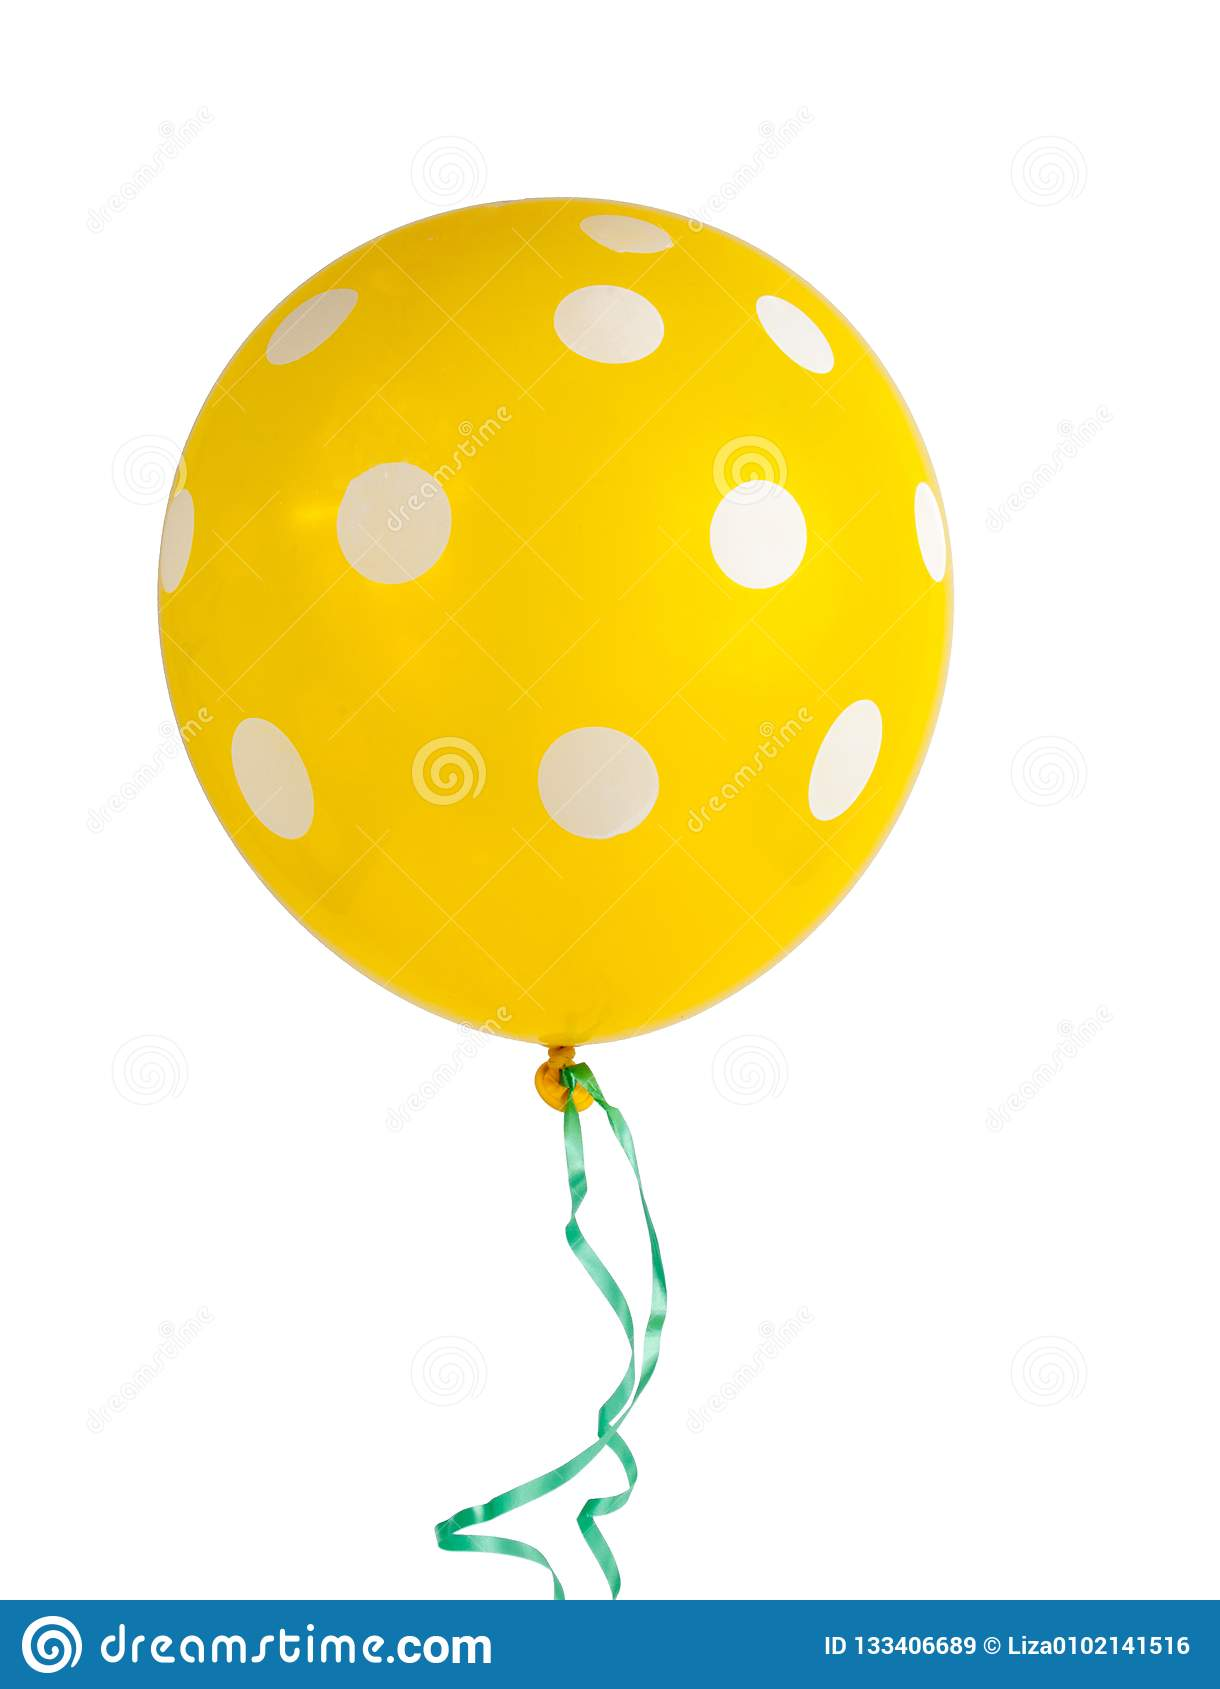 balloon with white dots isolated